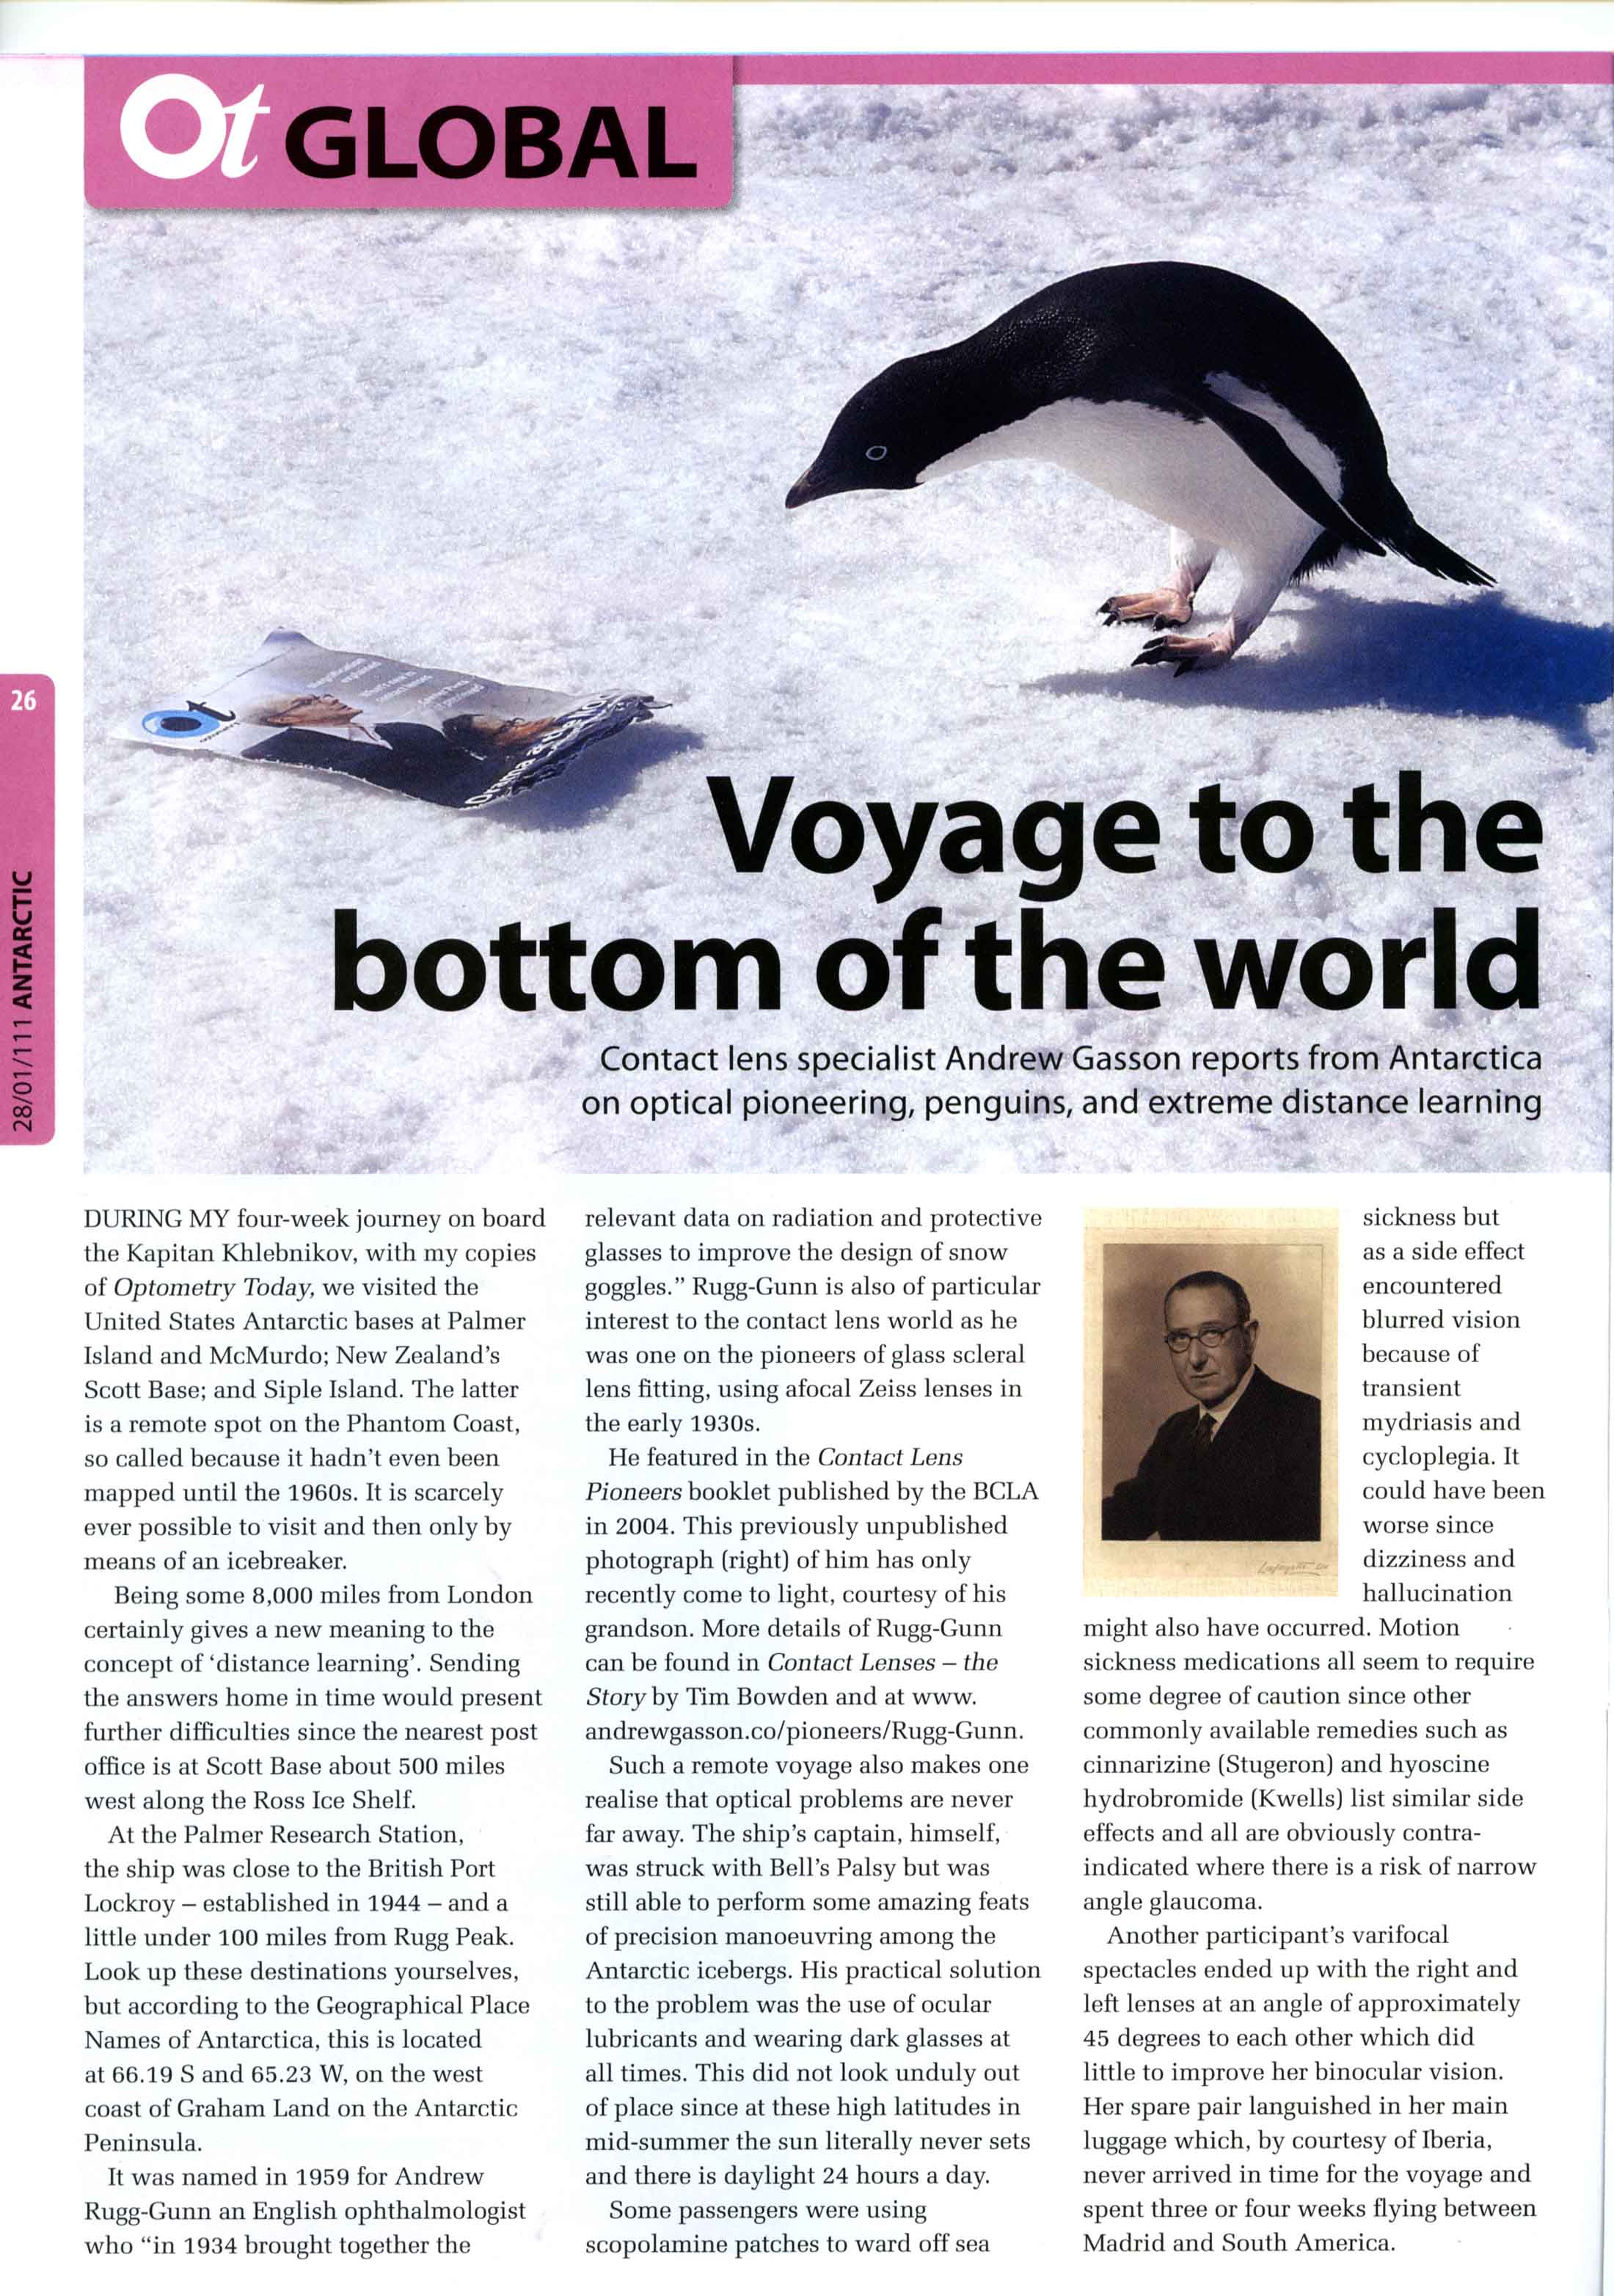 Andrew Gasson visited the Bay of Whales in the Ross Sea